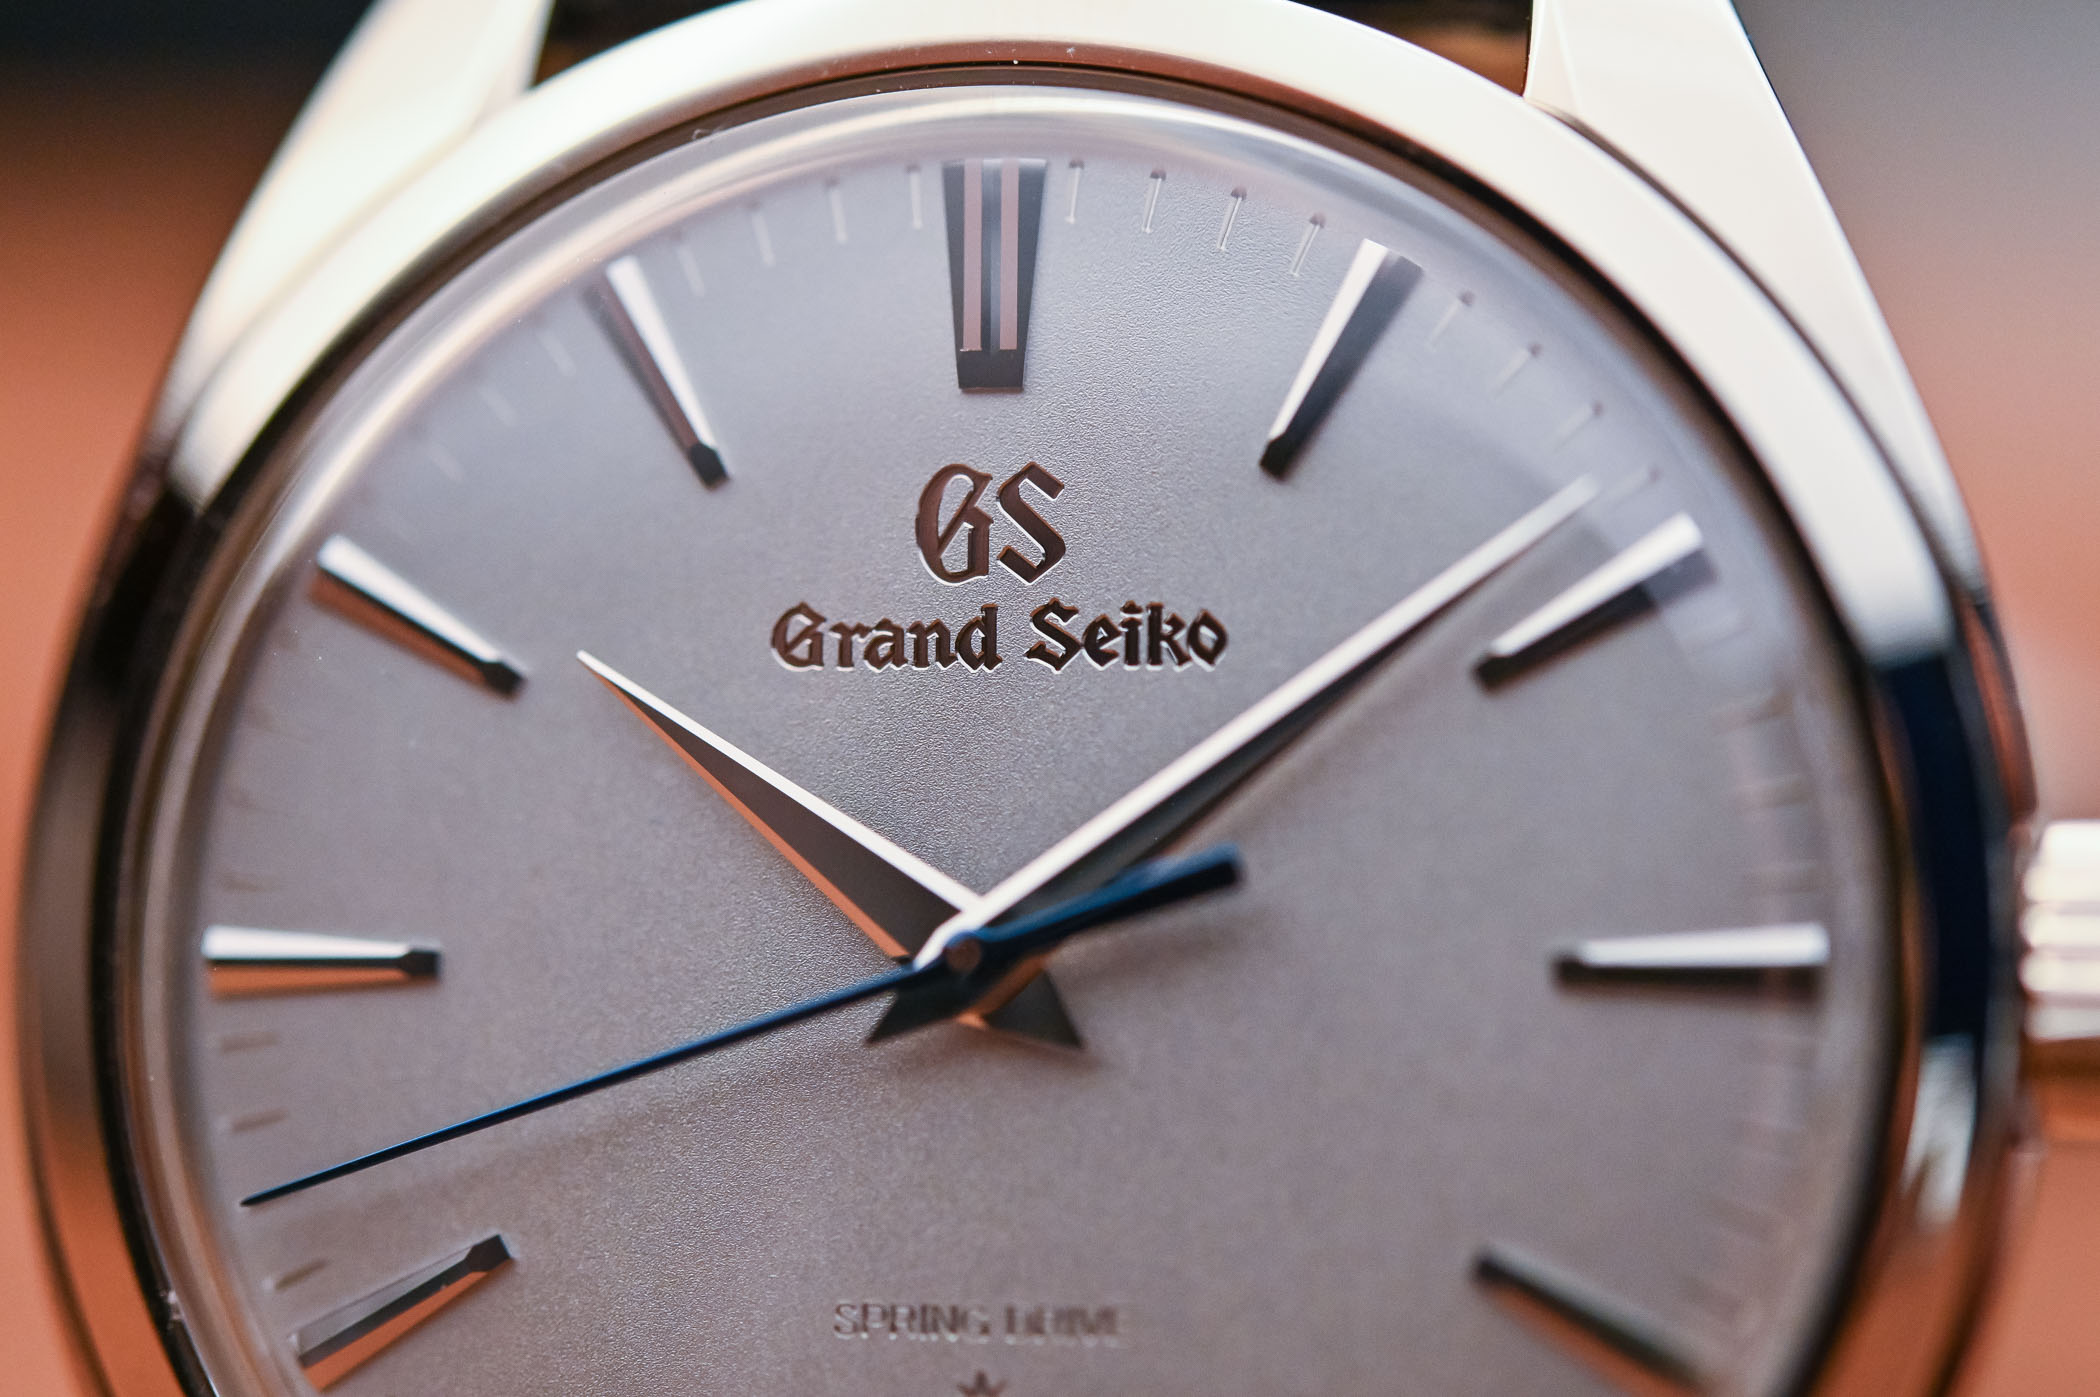 Grand Seiko Hand-Wound Spring Drive Collection - SBGY002 SBGY003 SBGZ002 SBGZ003 - 7